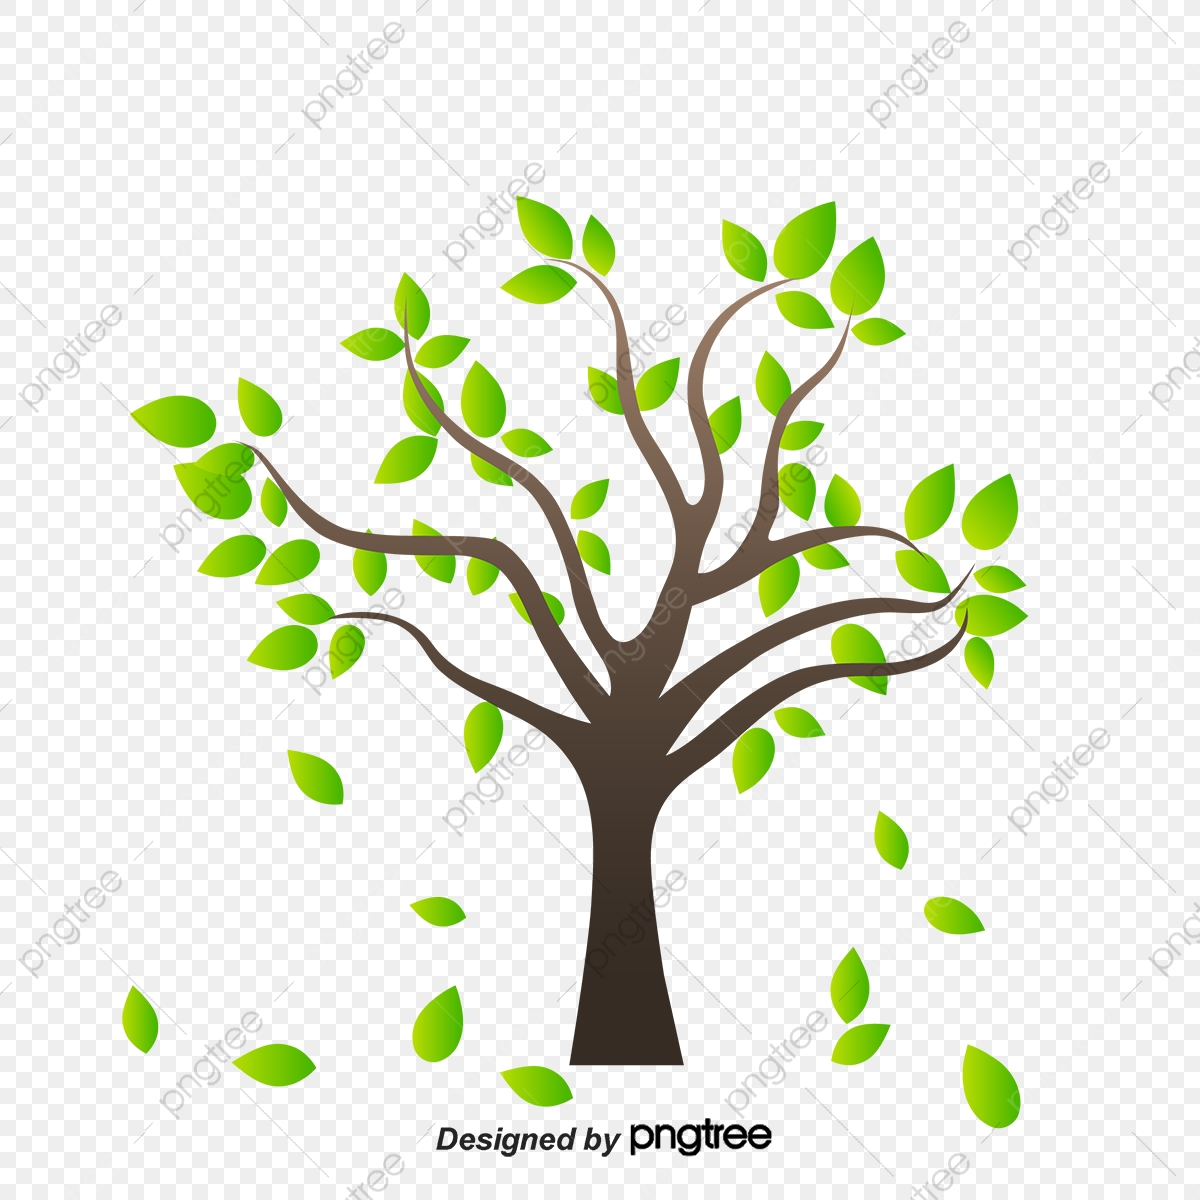 Cartoon Tree Cartoon Vector Tree Vector Trees Png And Vector With Transparent Background For Free Download C4d 3ds dae dxf fbx obj wrl oth. https pngtree com freepng cartoon tree 930998 html